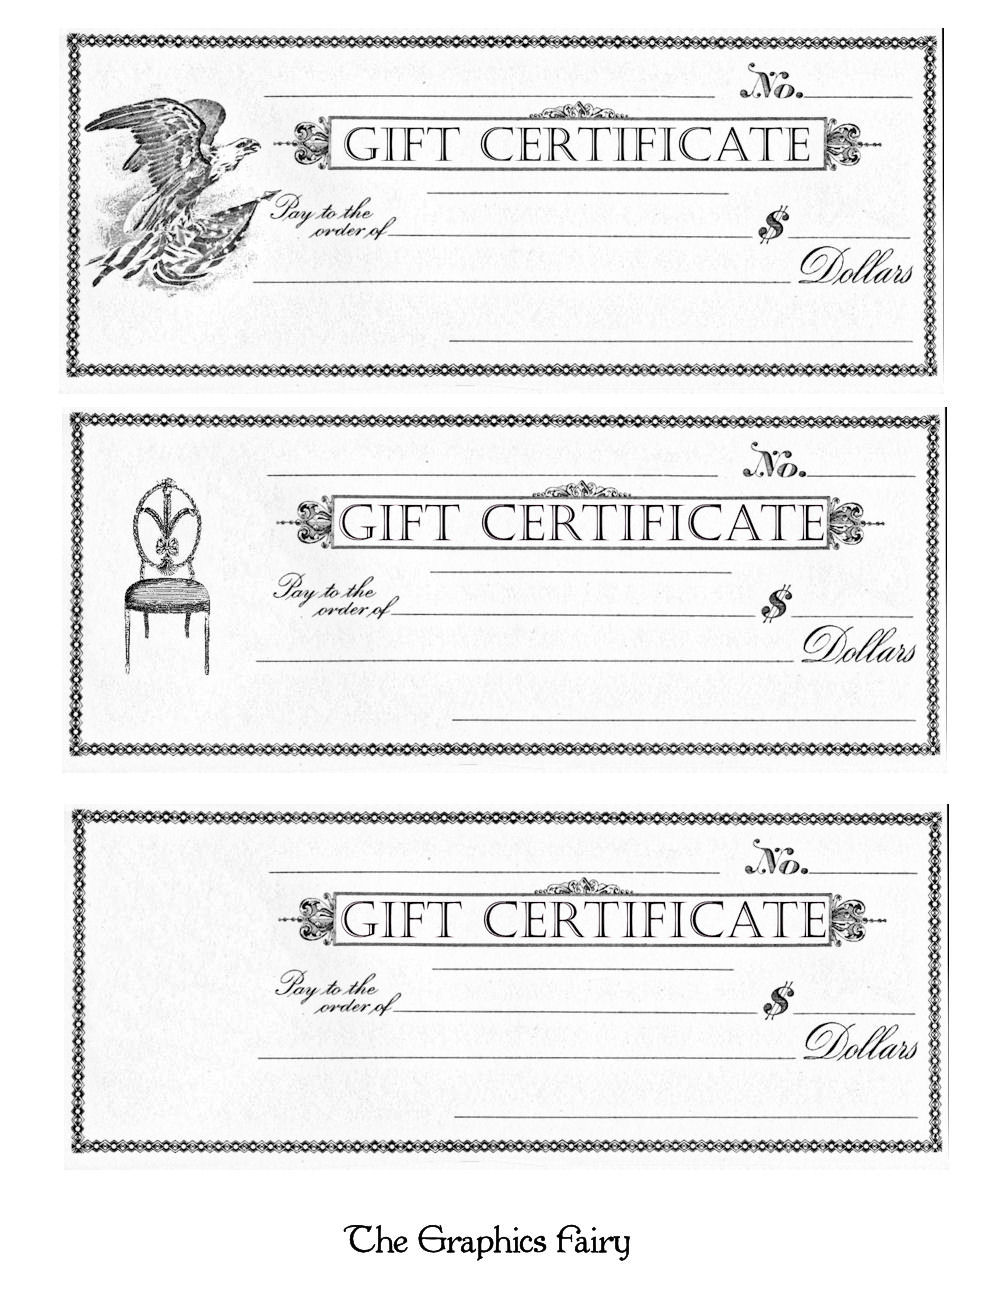 free printable gift certificates the graphics fairy. Black Bedroom Furniture Sets. Home Design Ideas